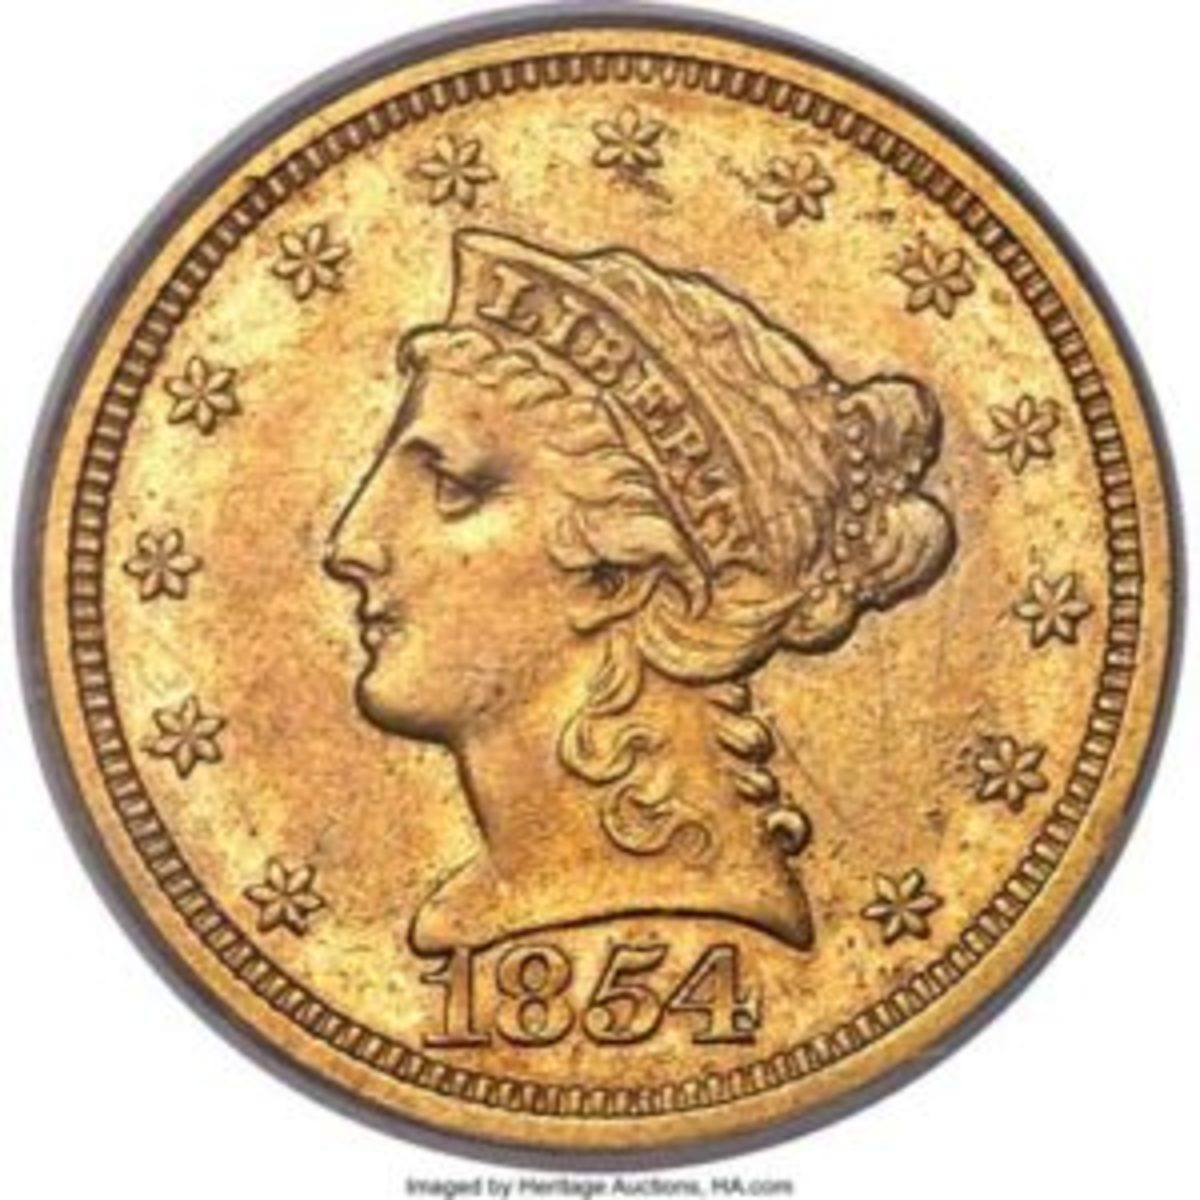 1854-S Liberty Head Half Eagle.